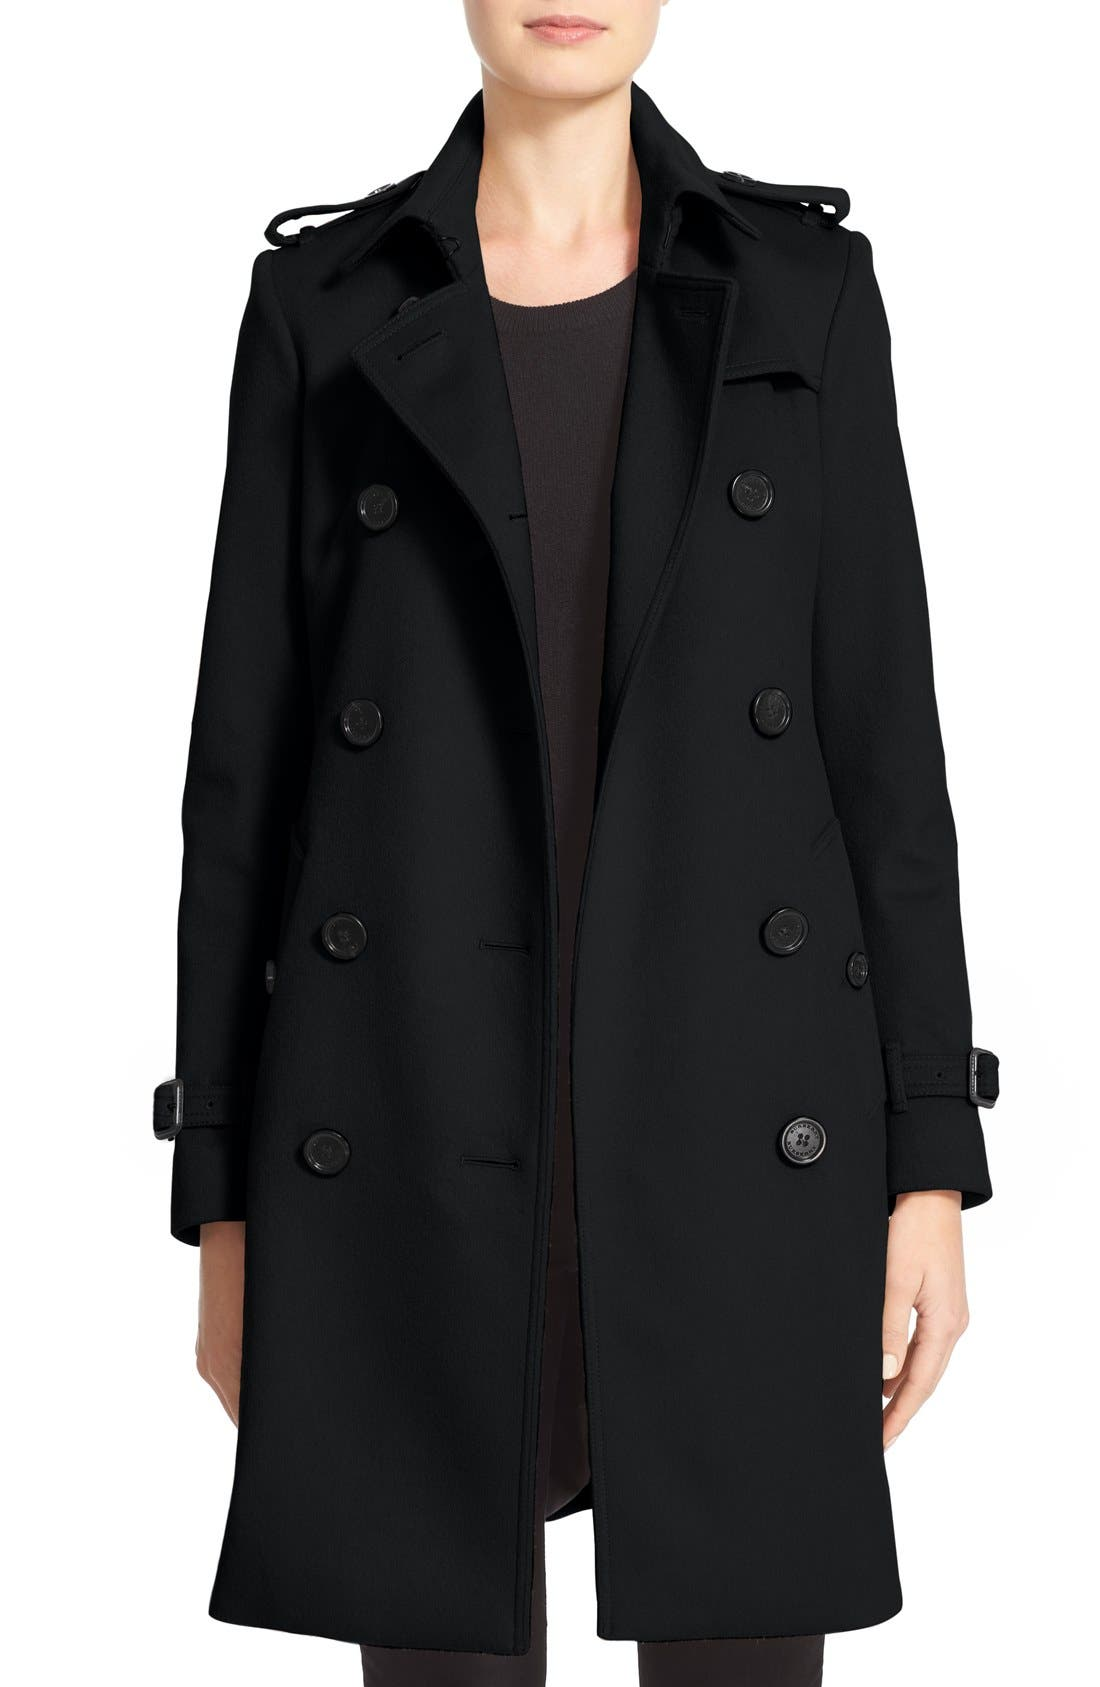 Alternate Image 1 Selected - Burberry Kensington Double Breasted Wool & Cashmere Trench Coat